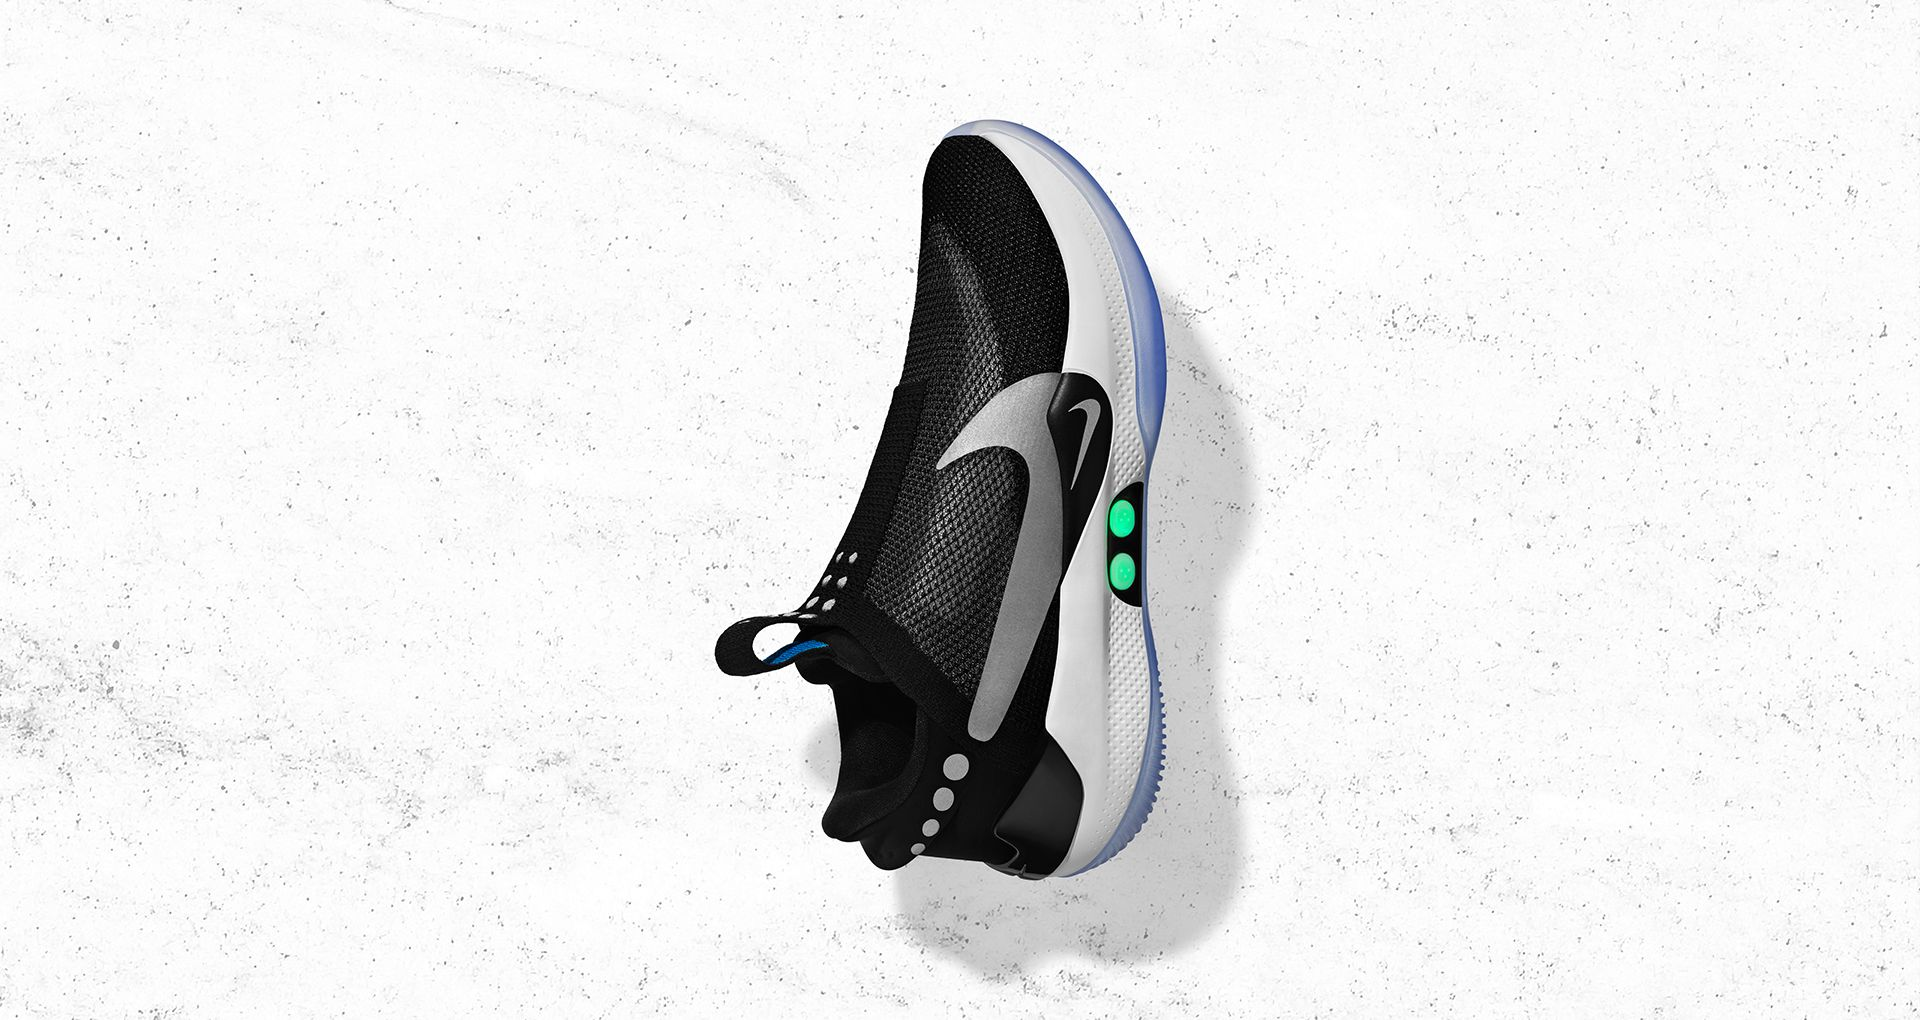 outlet store f09c5 71a21 Designed to give you a customized, consistent fit, the Nike Adapt BB is our  first power lacing shoe that s built for basketball.